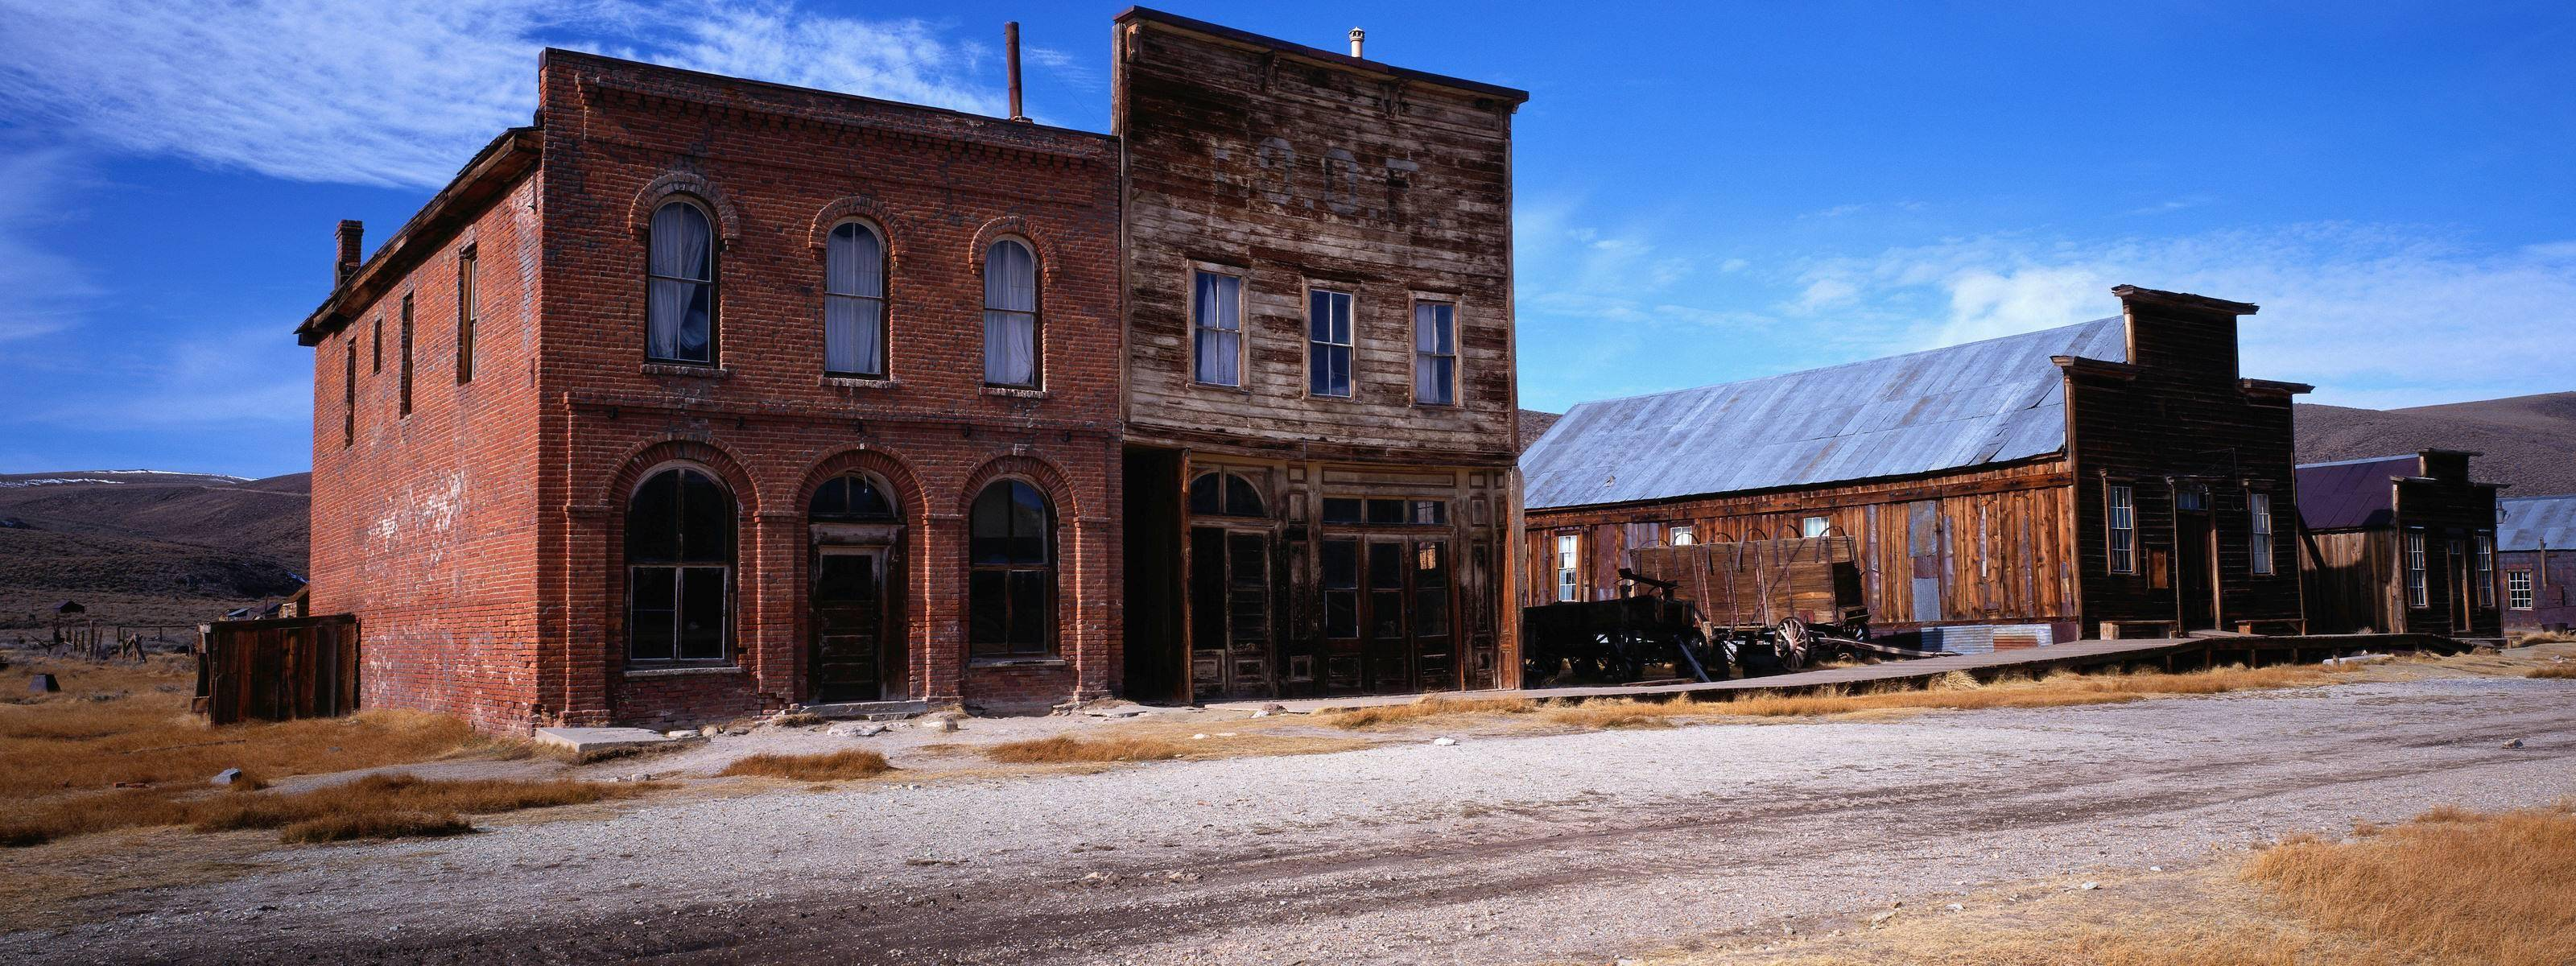 western town background - photo #10